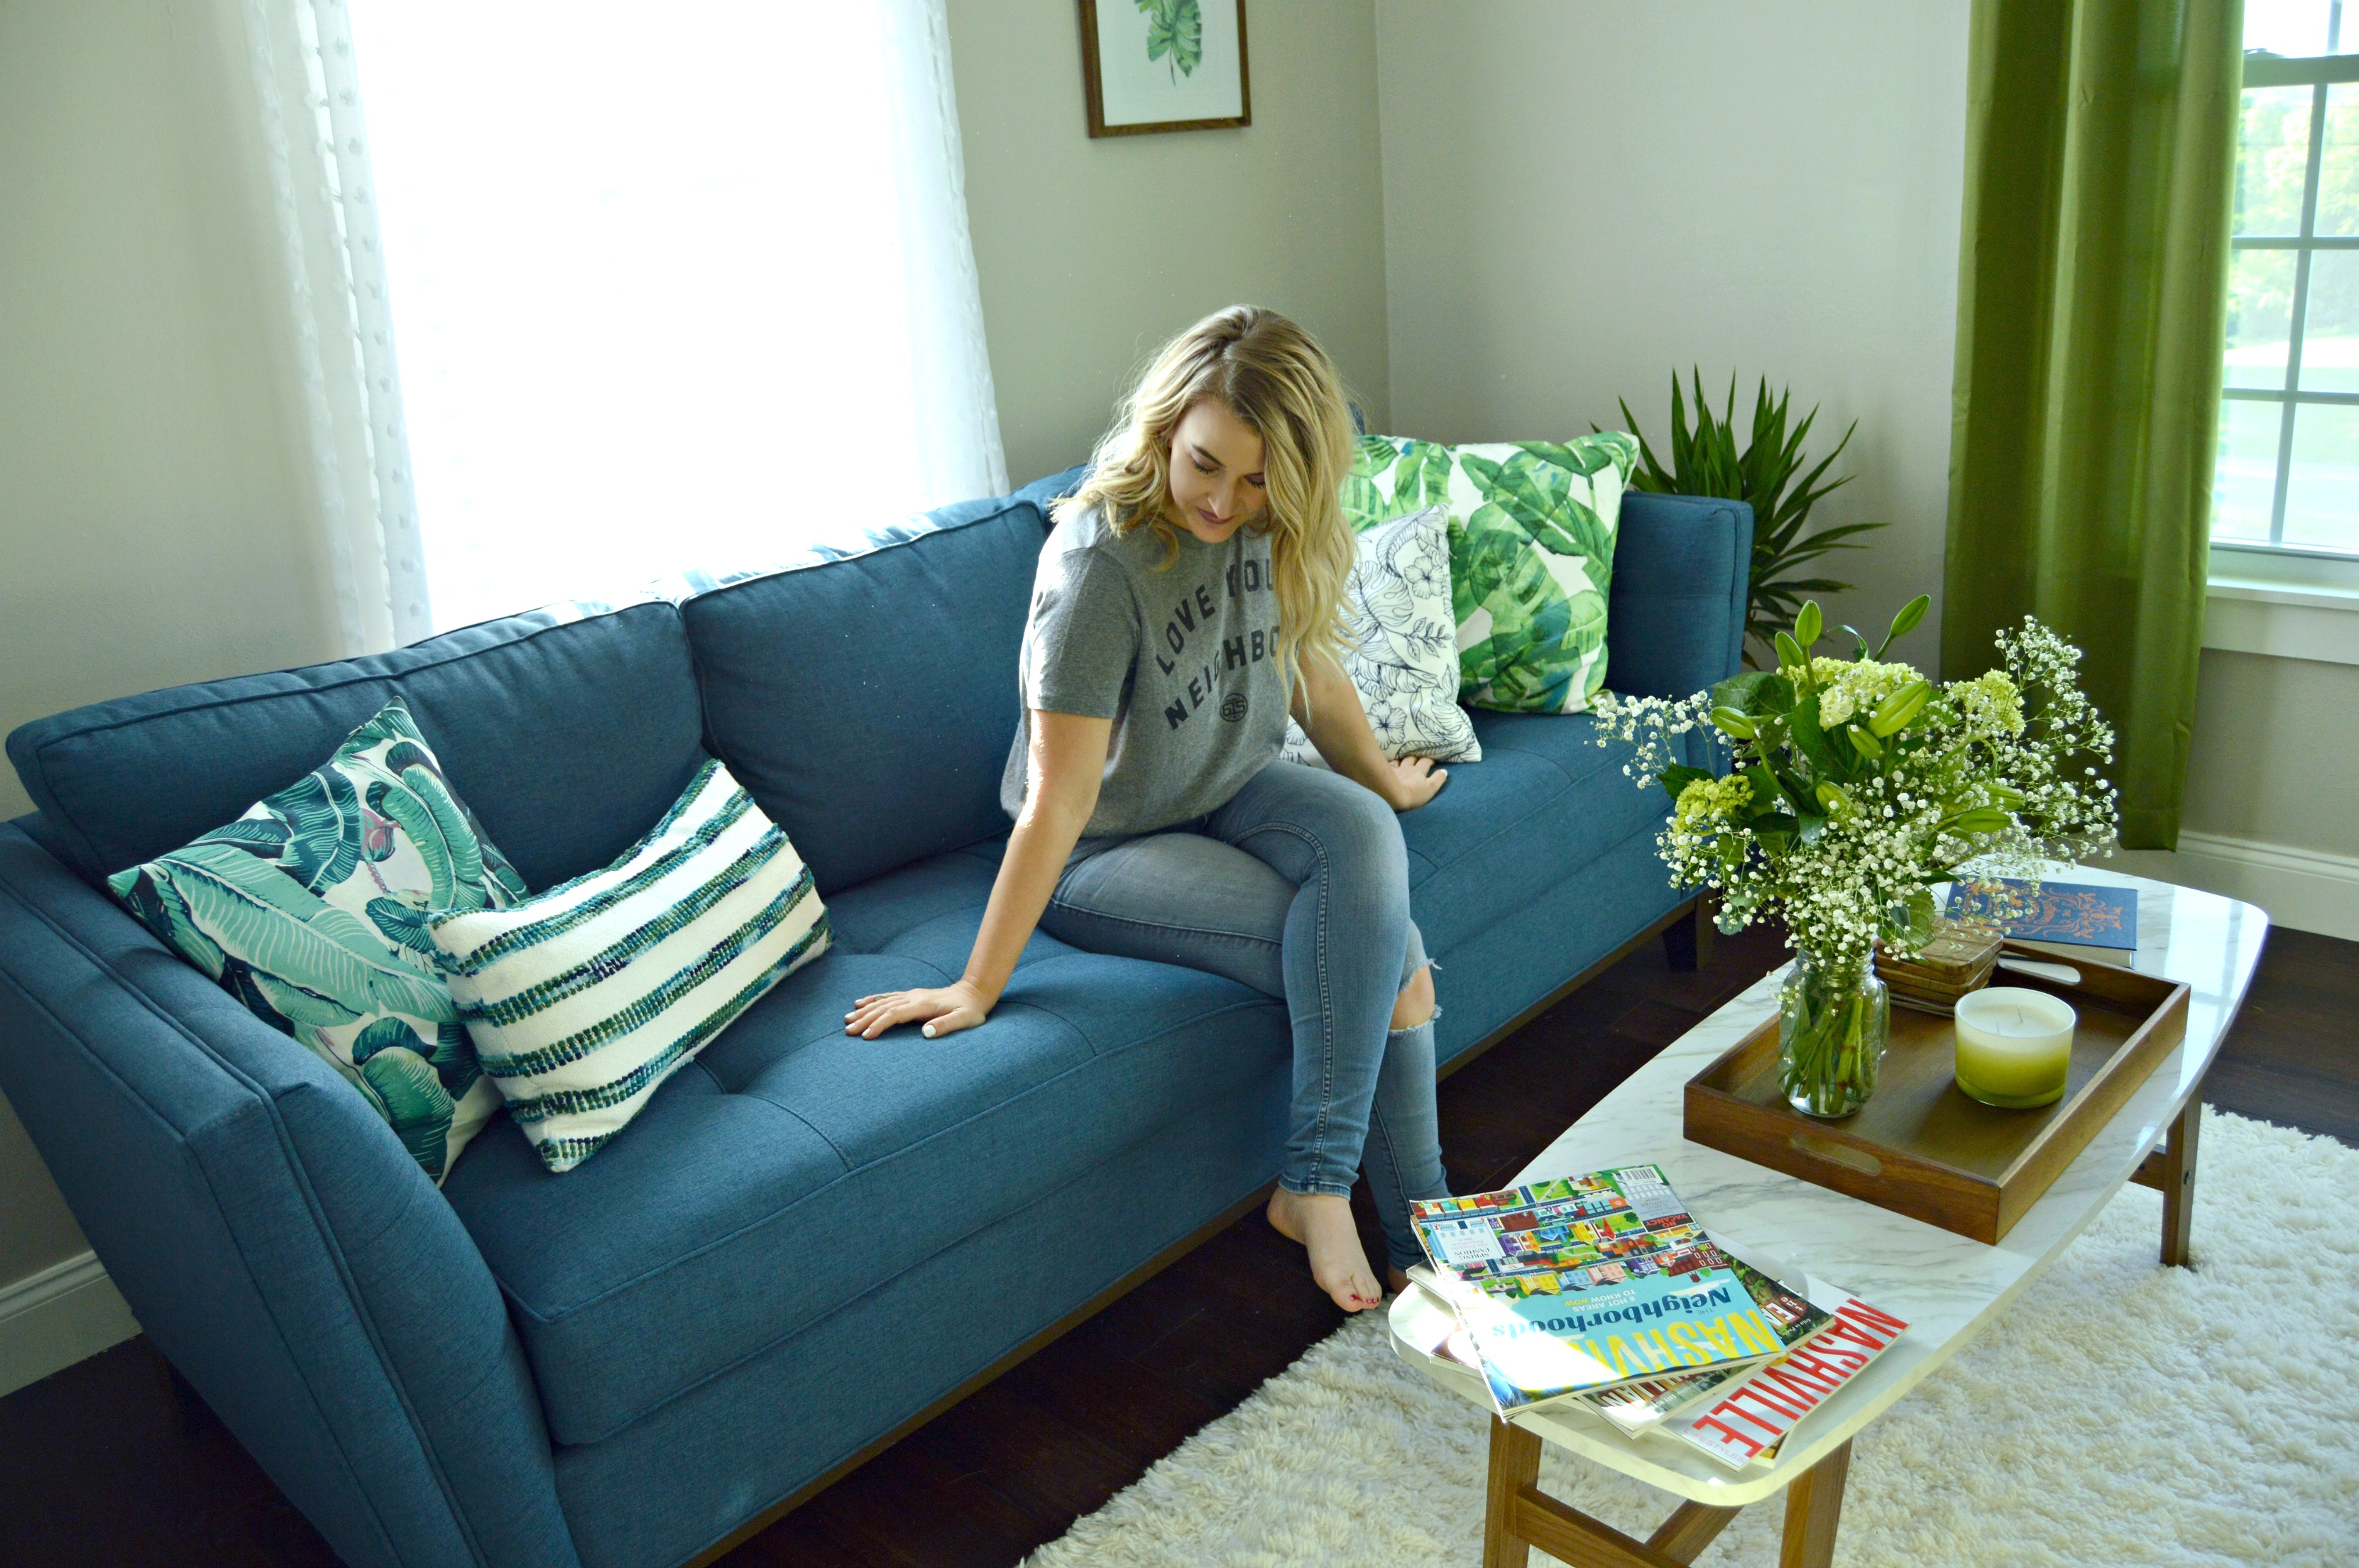 redecorating made simple breezy and brazen